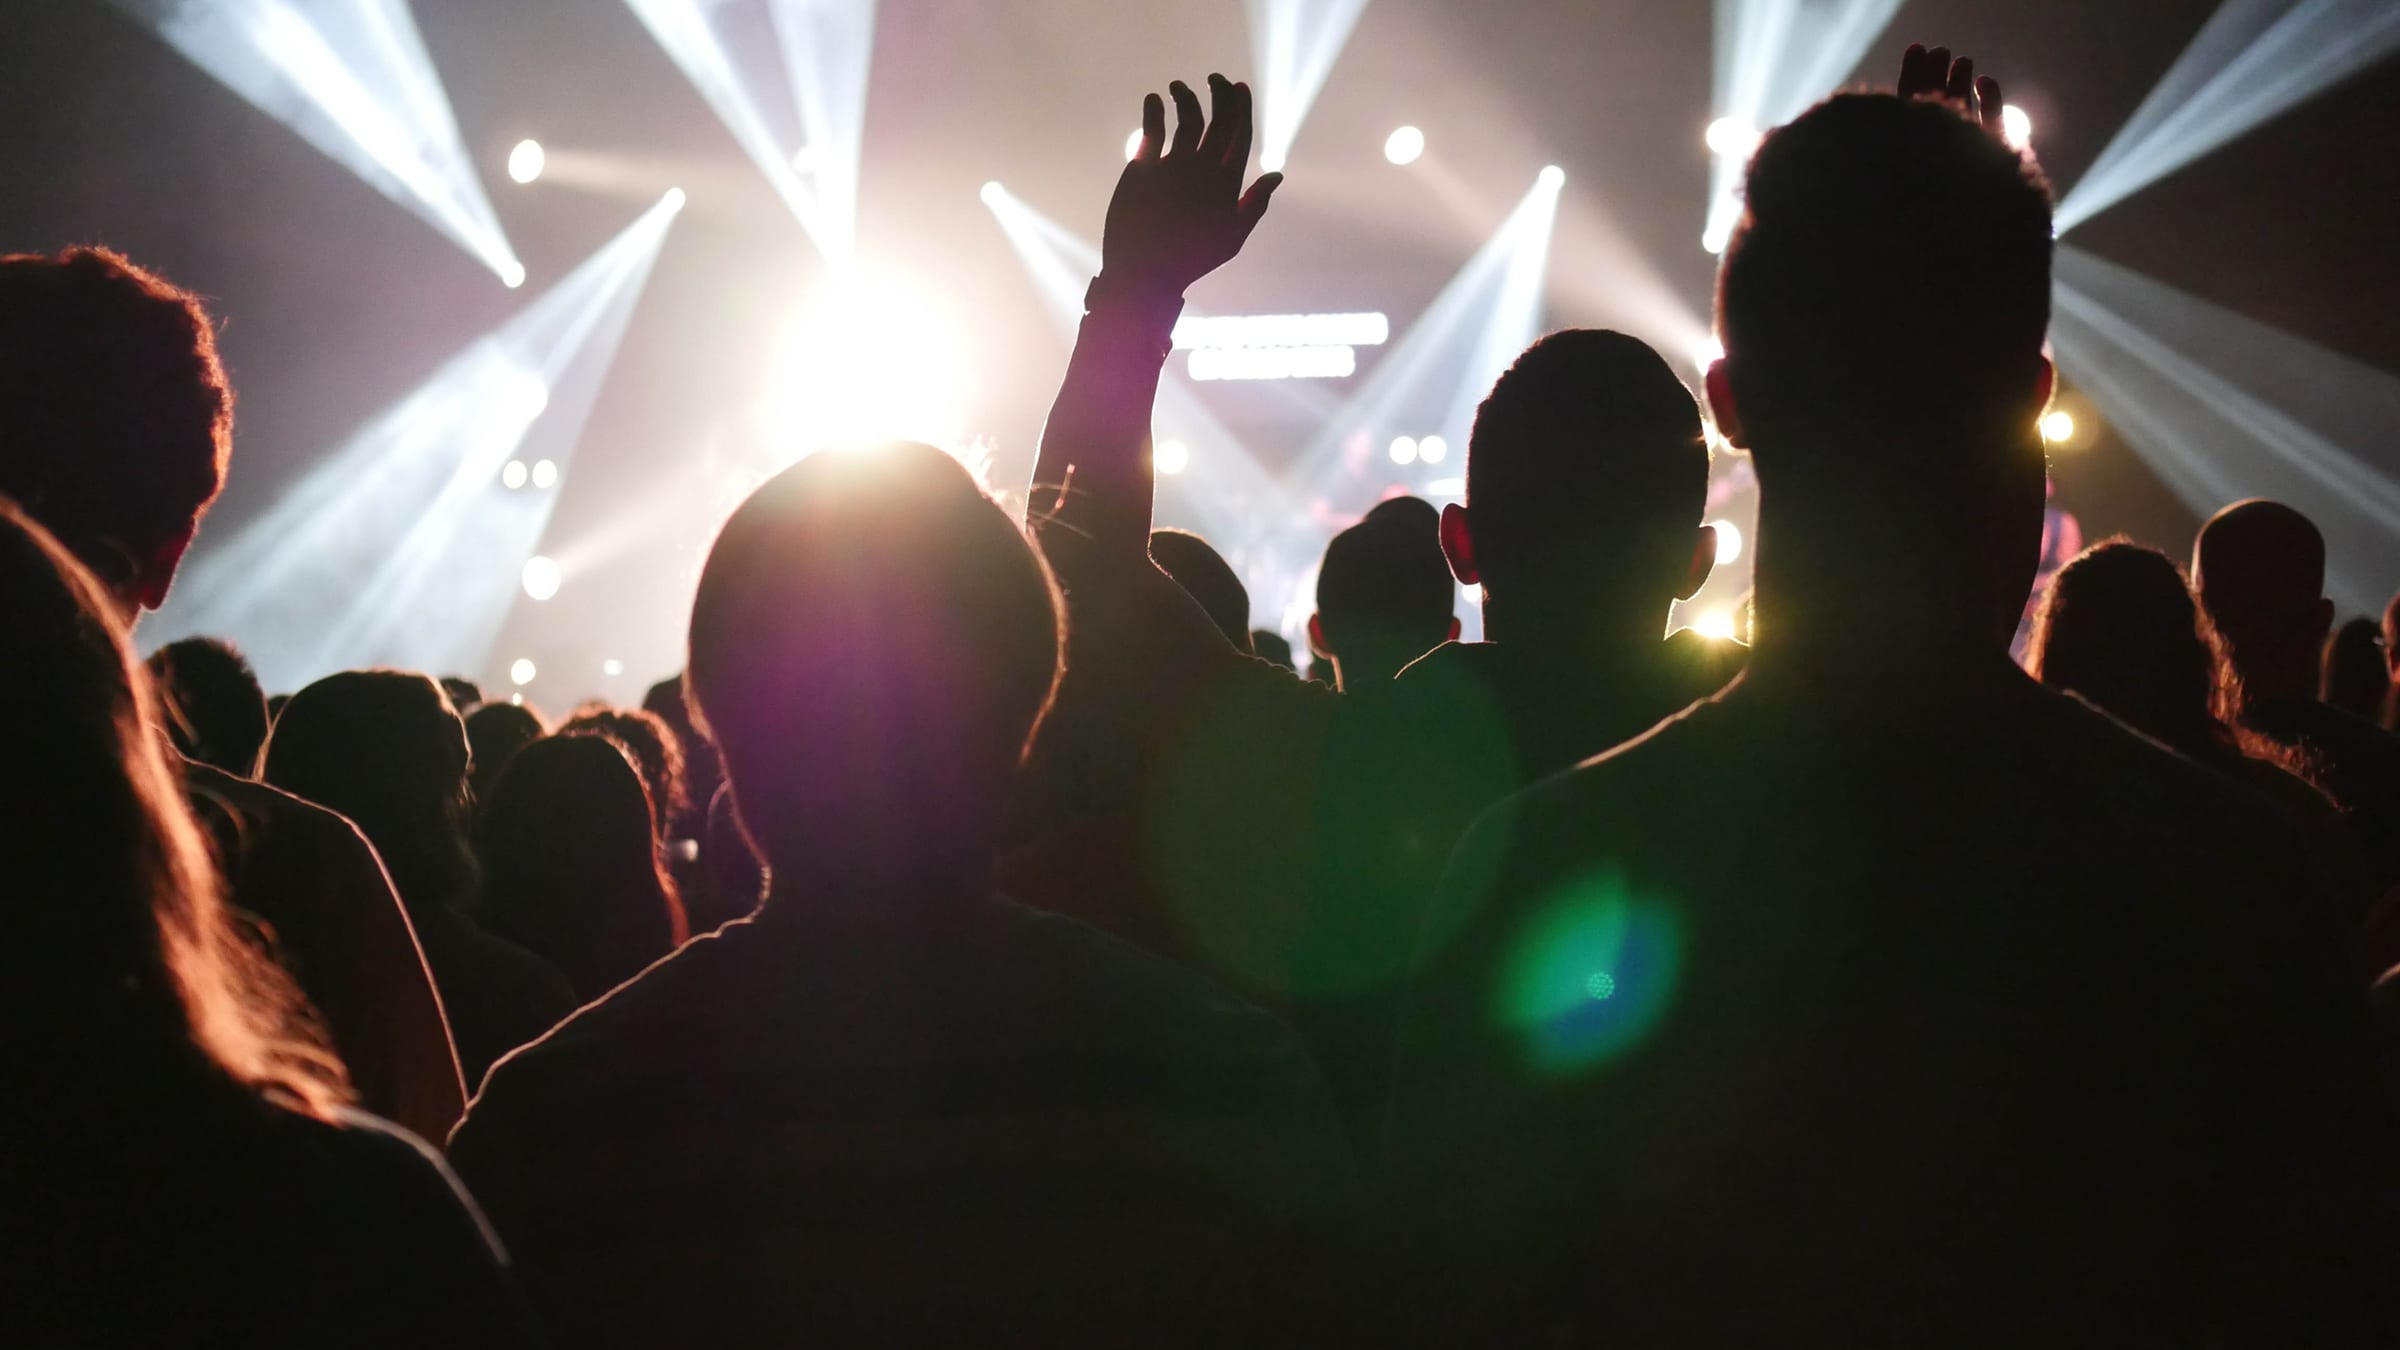 About Legacy Church in Fort Collins, CO